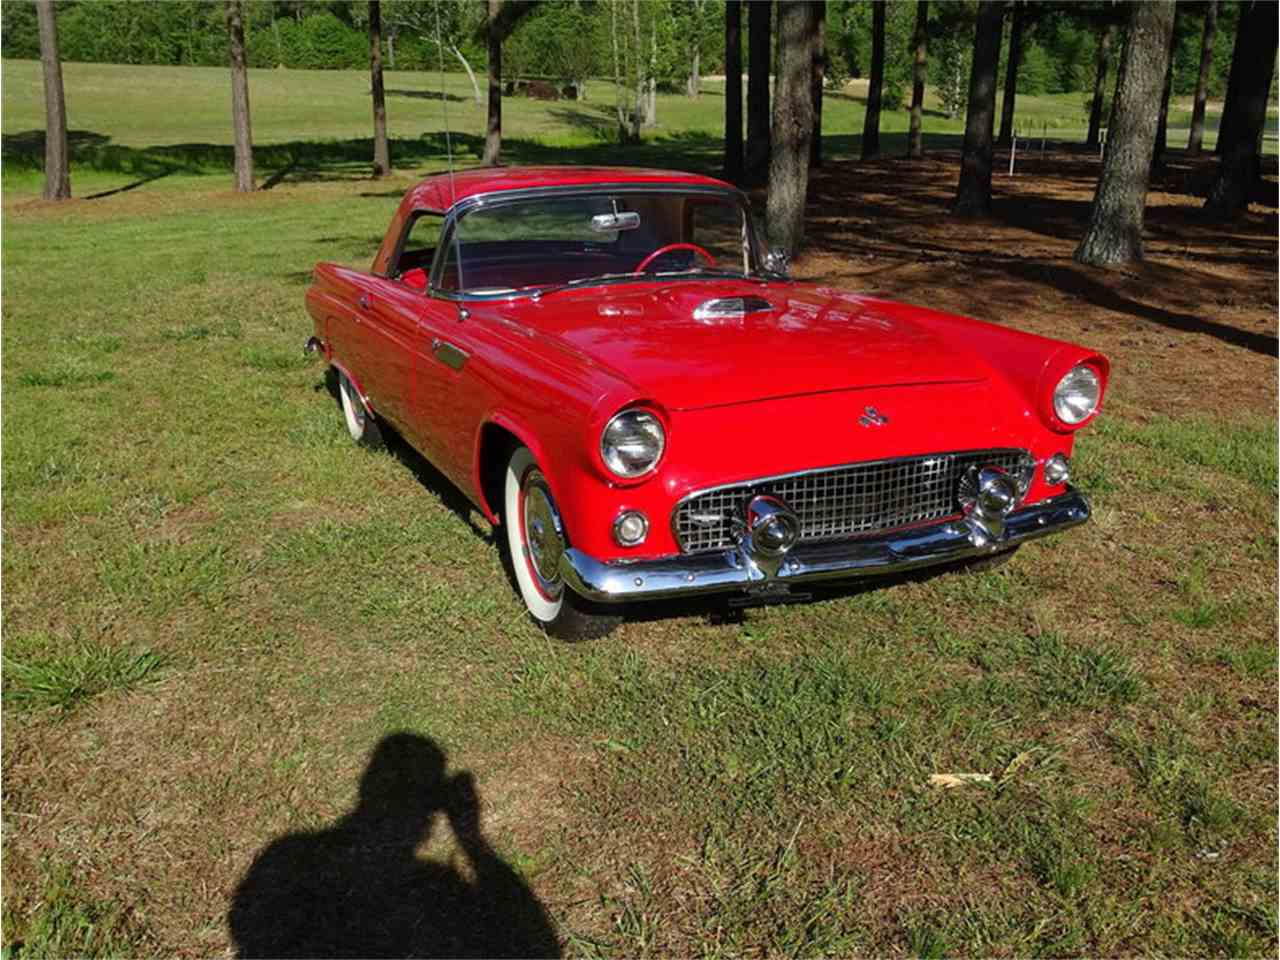 Large Picture of Classic 1955 Ford Thunderbird located in Greensboro North Carolina Auction Vehicle - NMA5